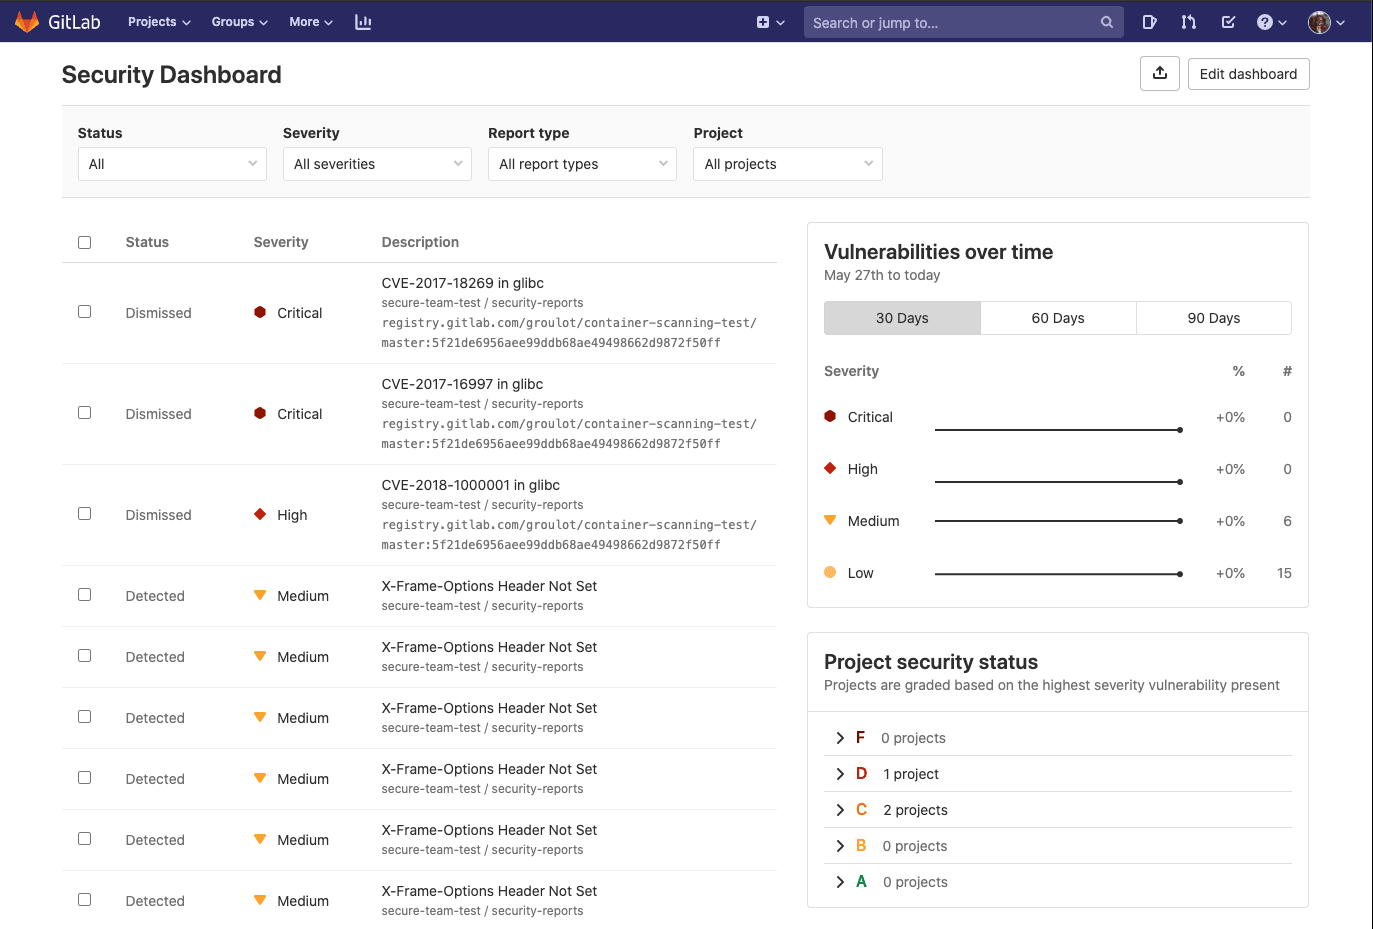 doc/user/application_security/security_dashboard/img/instance_security_dashboard_with_projects_v13_2_sm.png